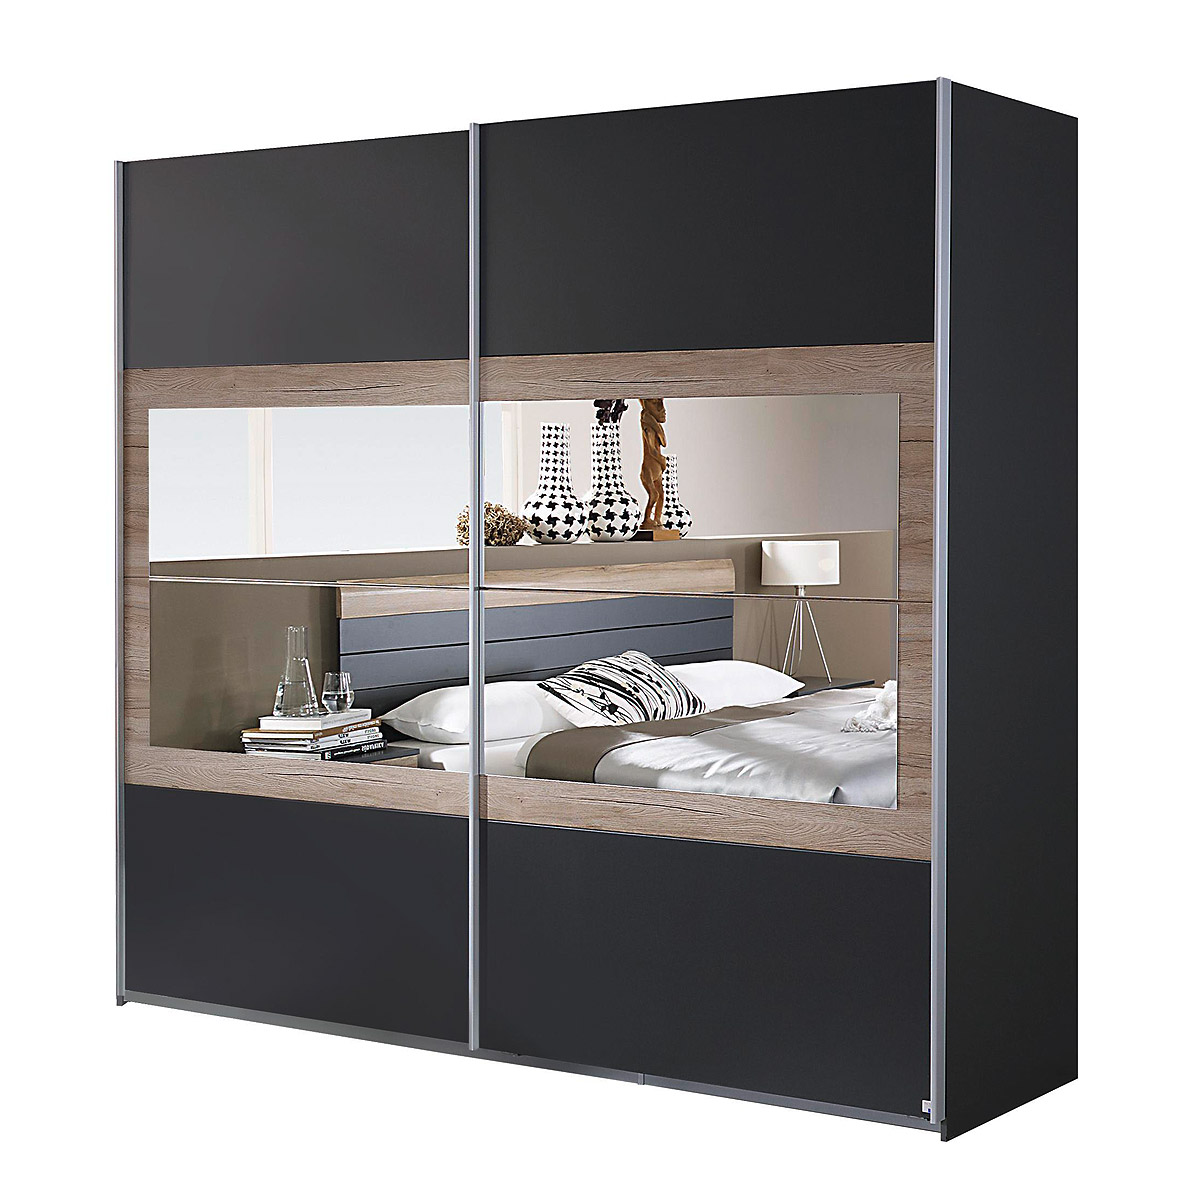 schwebet renschrank tarragona schlafzimmer kleiderschrank. Black Bedroom Furniture Sets. Home Design Ideas